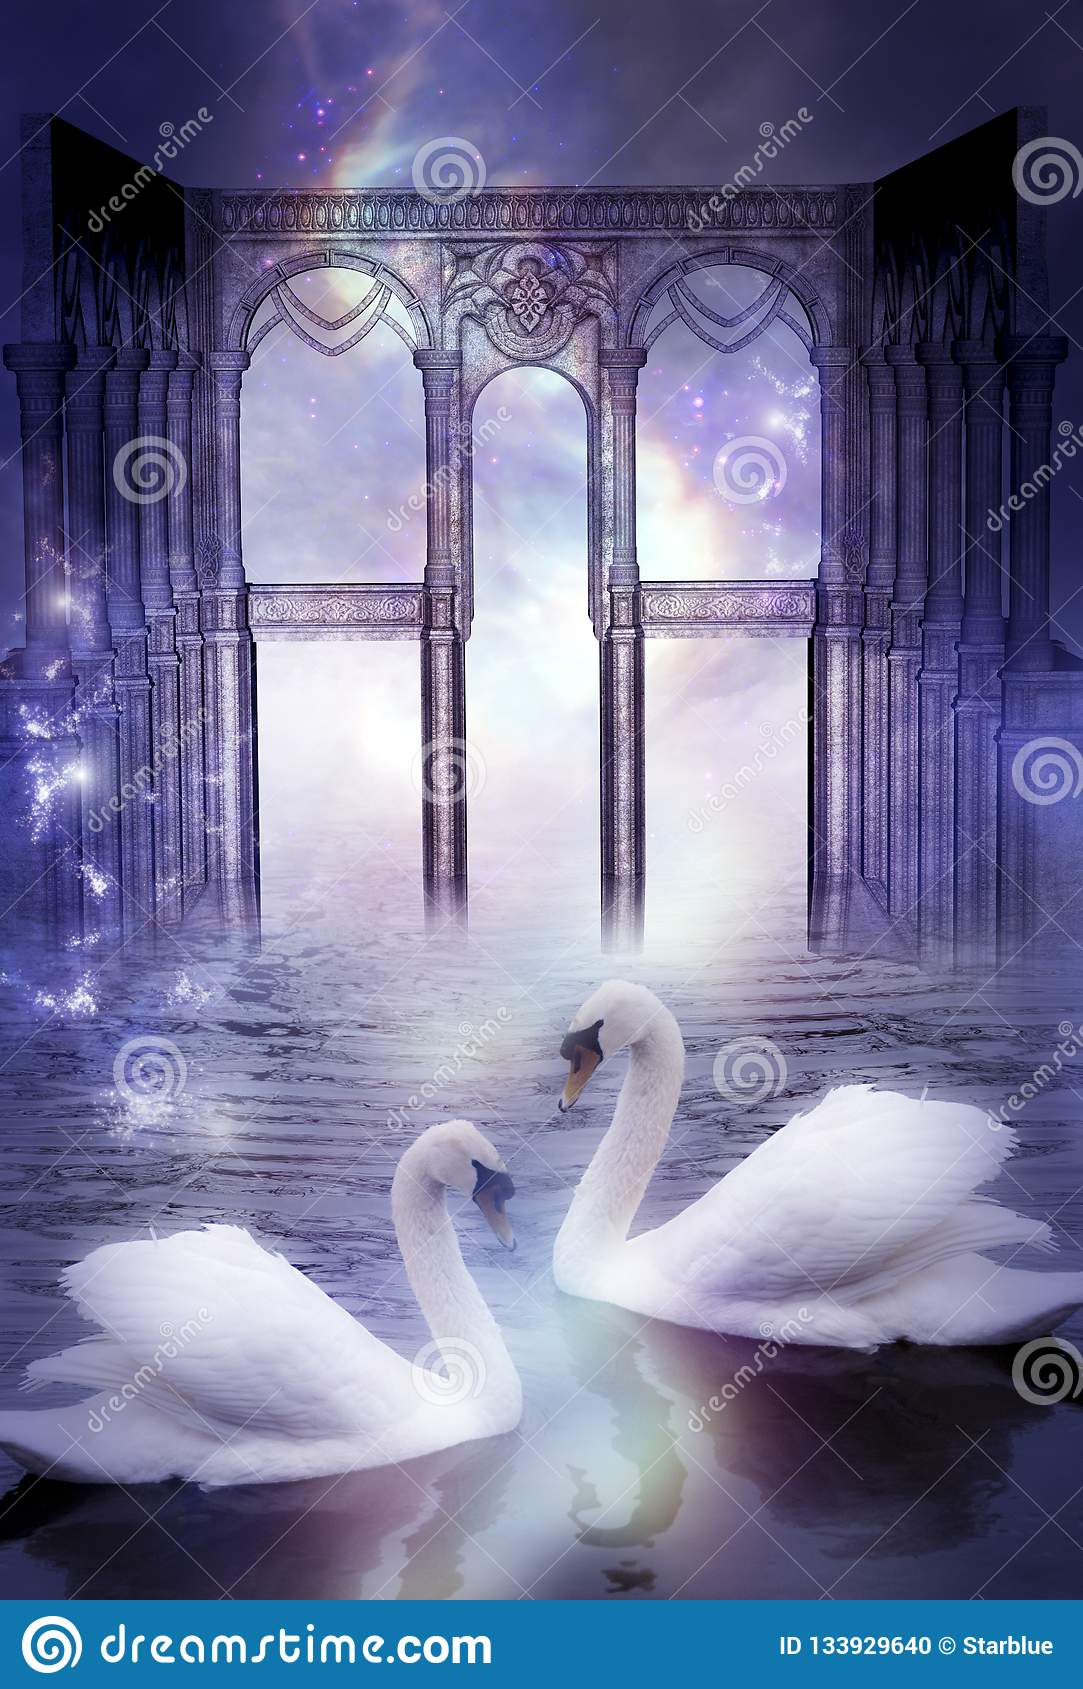 Mystical swans with divine gate like artistic surreal magic dreamy concept